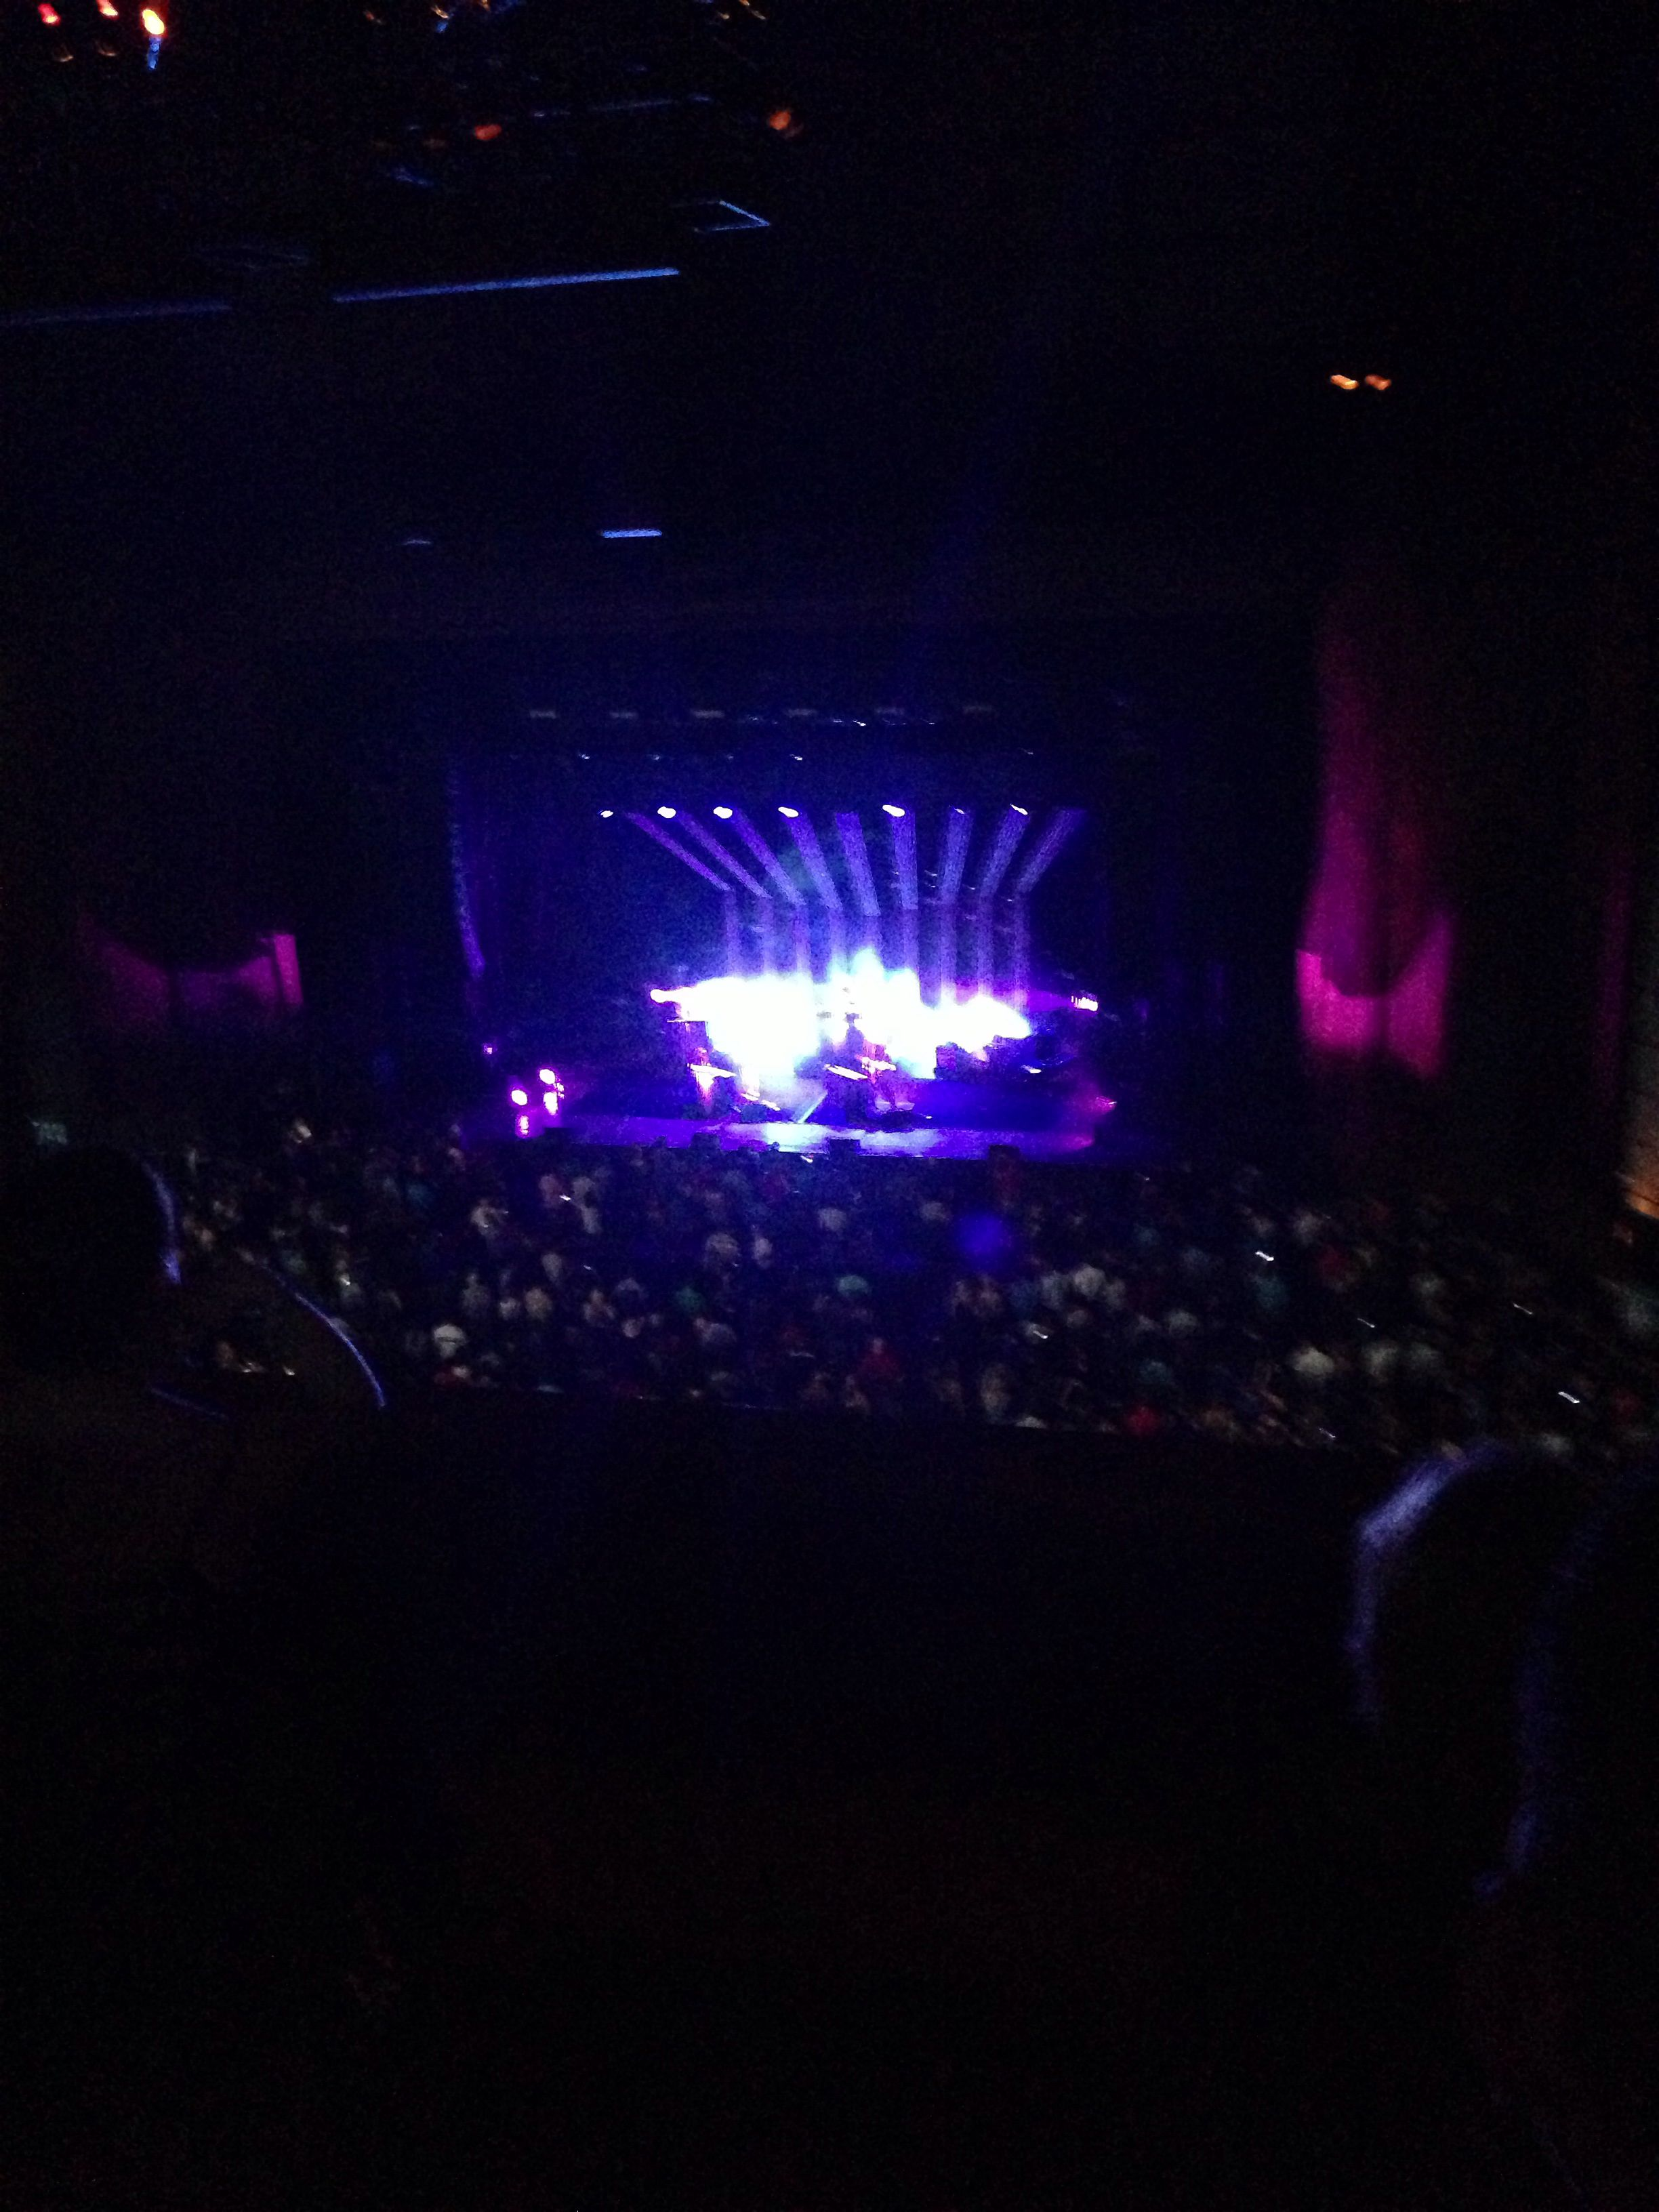 The Postal Service at the Mann Music Center